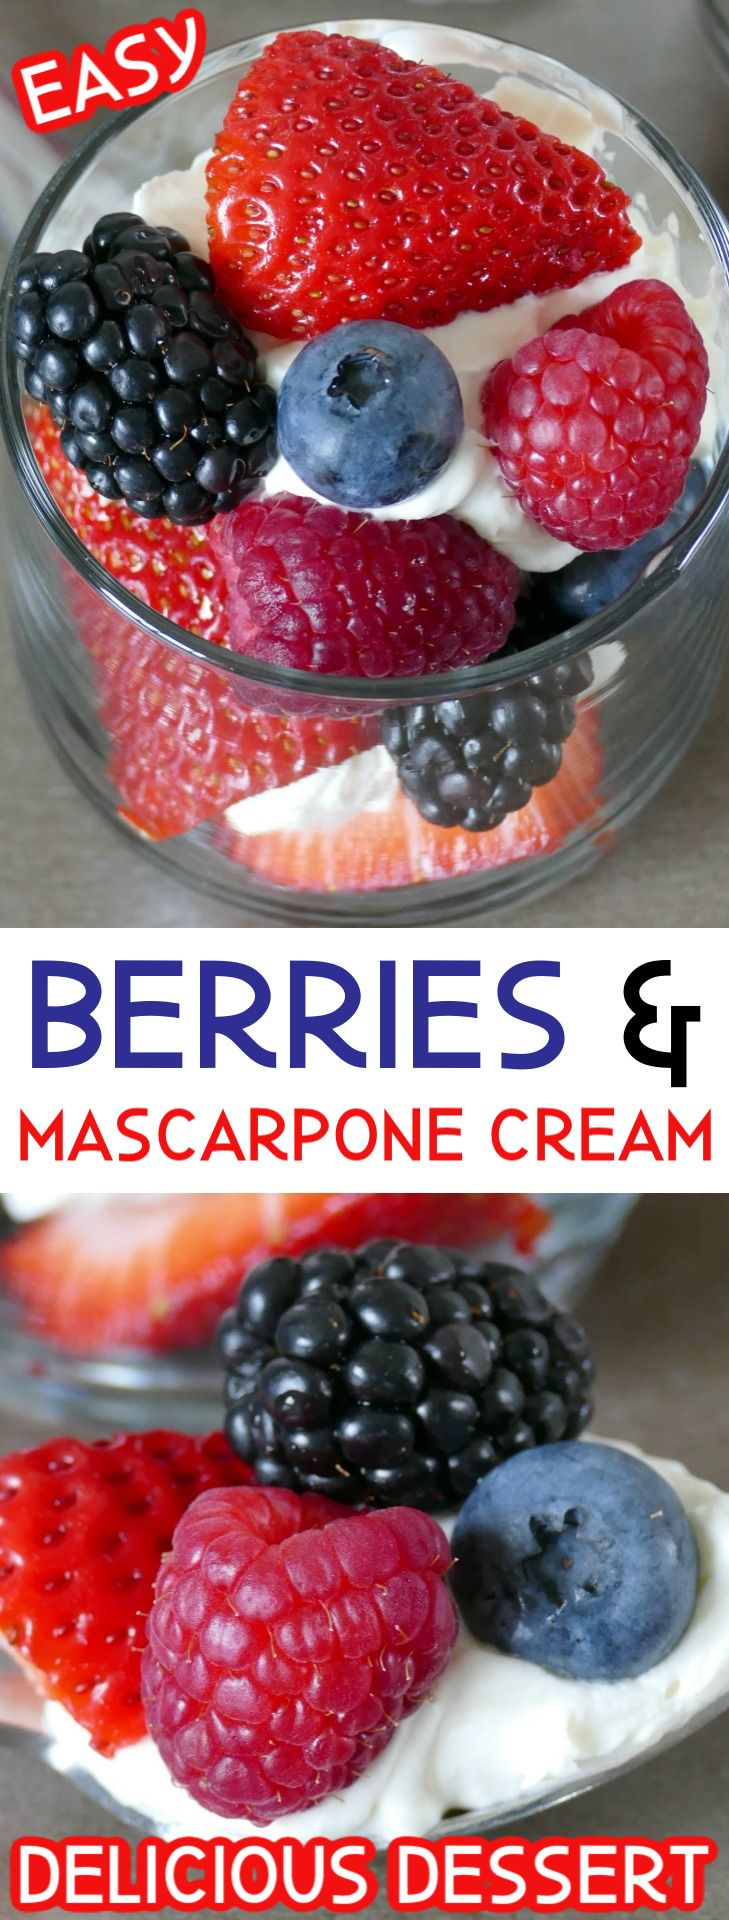 Easy Berries with Sweet Mascarpone Cream Dessert Recipe! So heavenly and such a perfect treat!